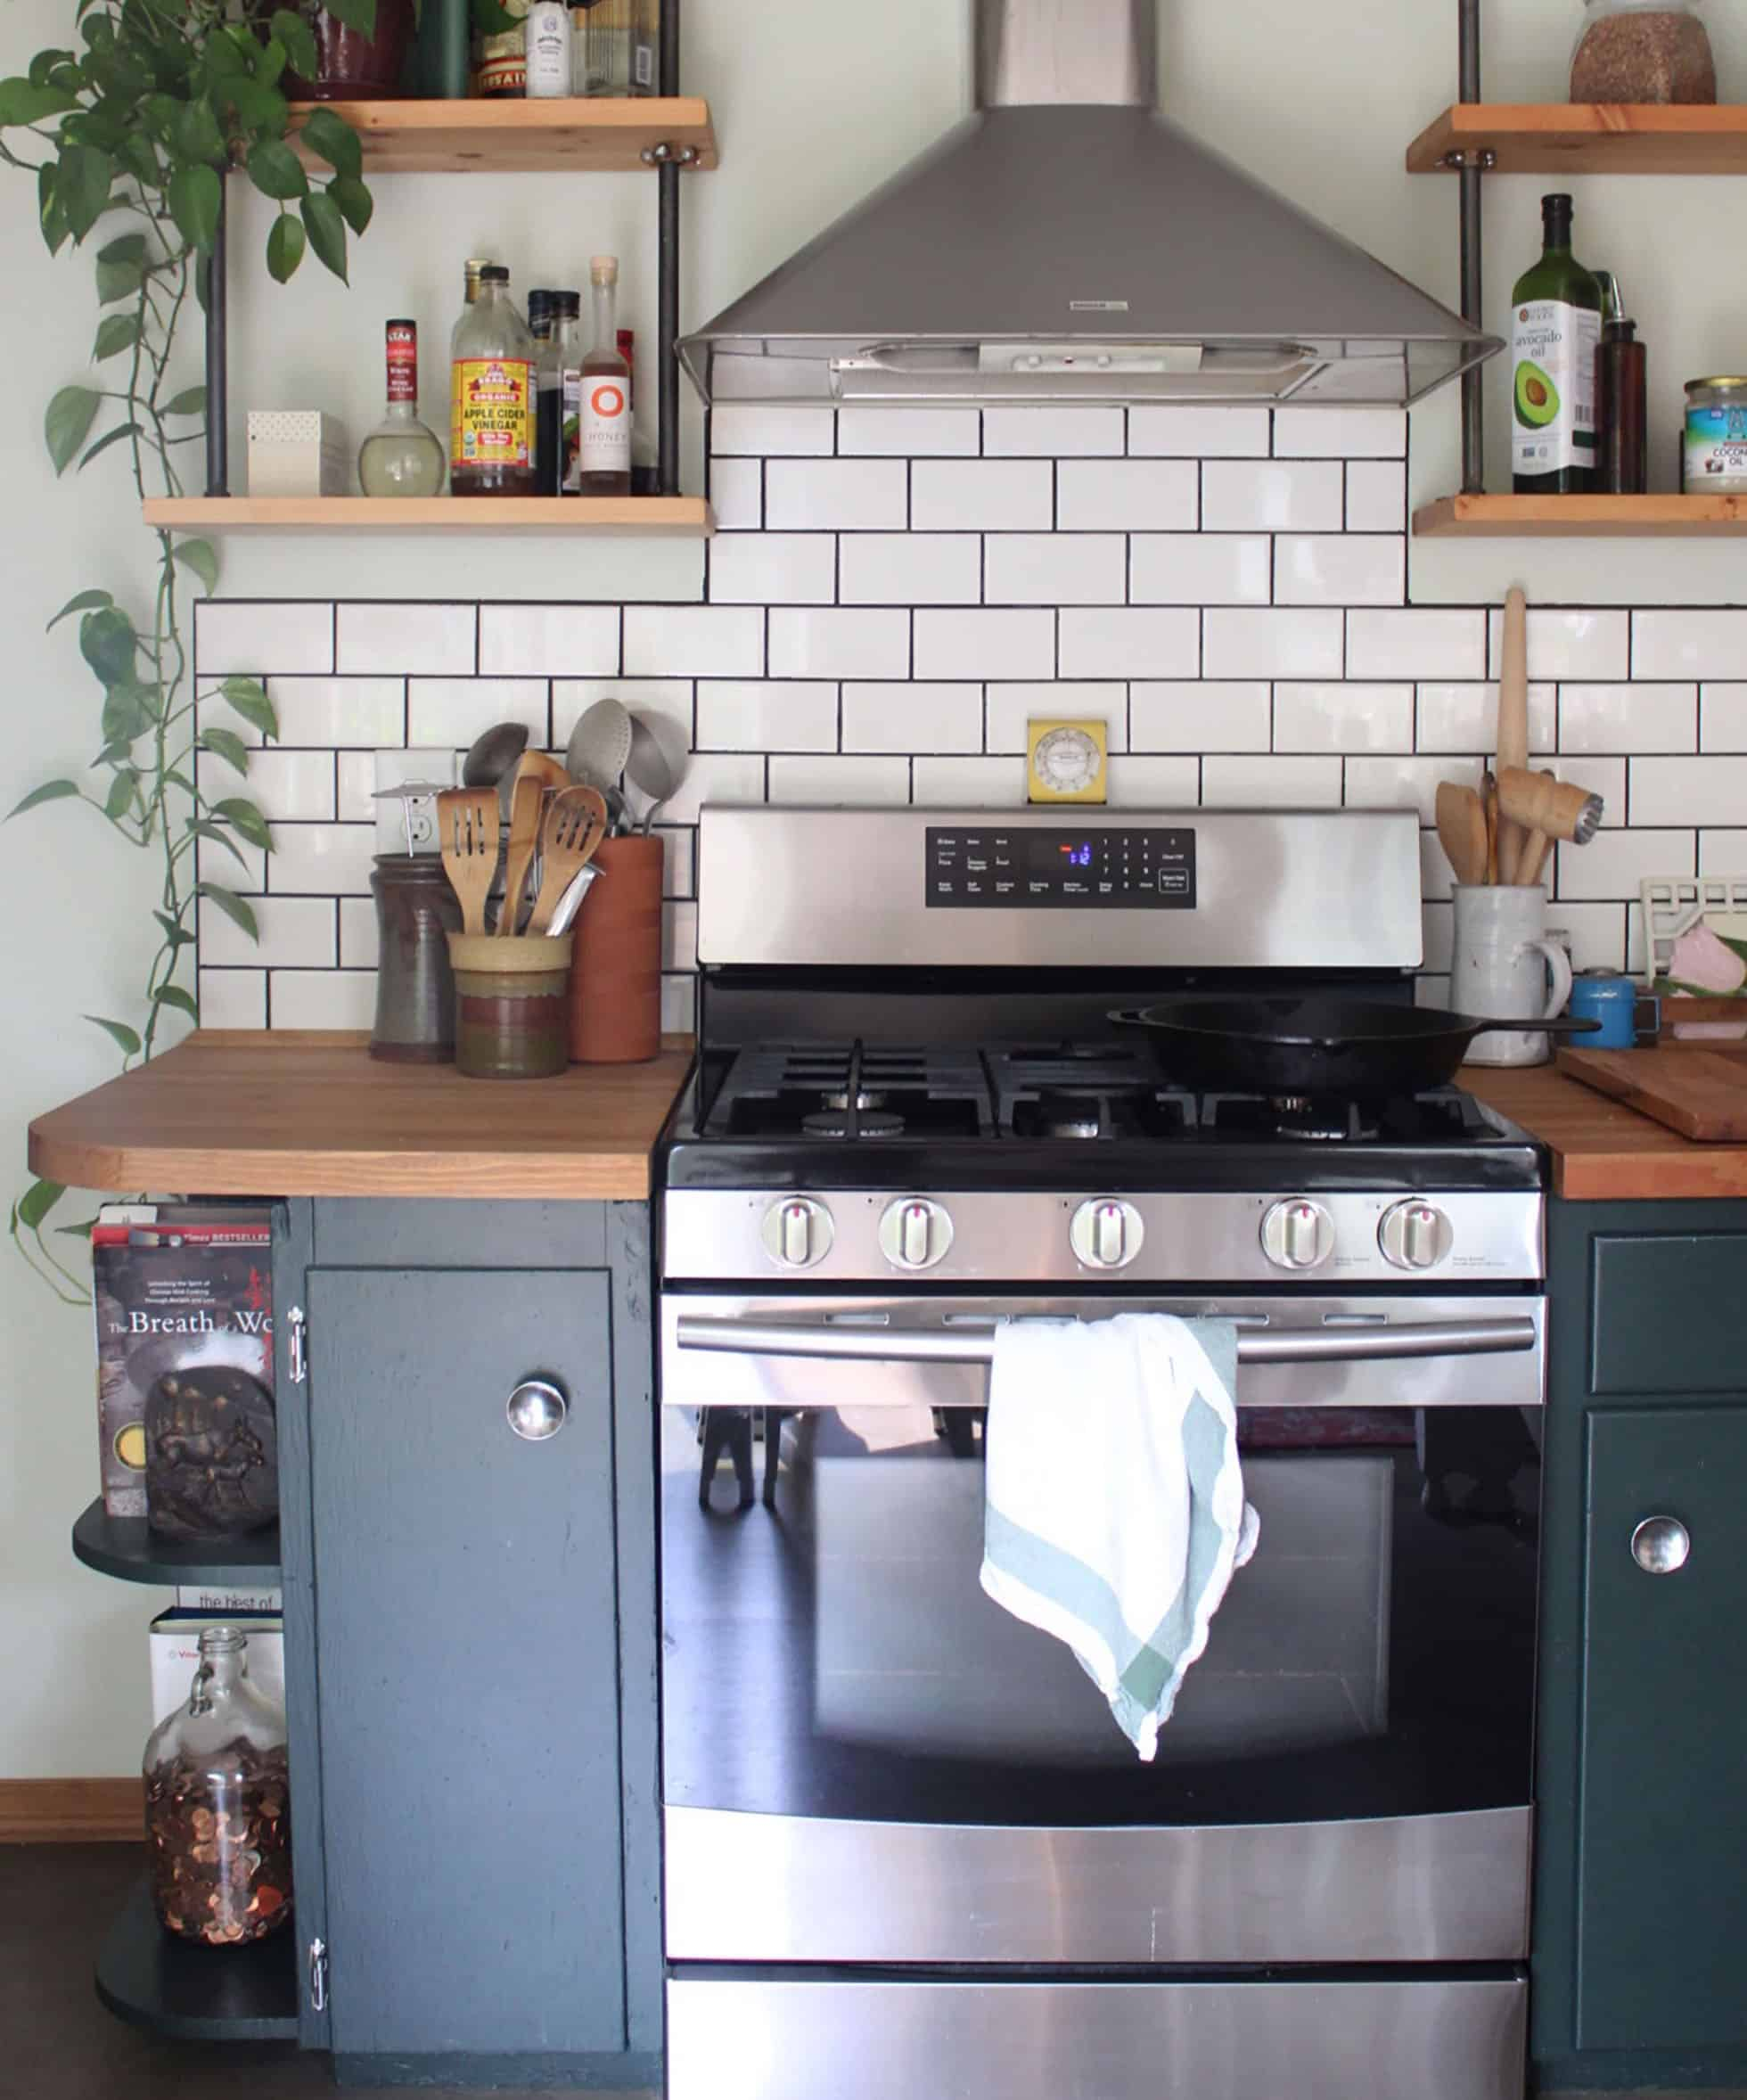 Stainless steel stove with hood between dark blue cabinets